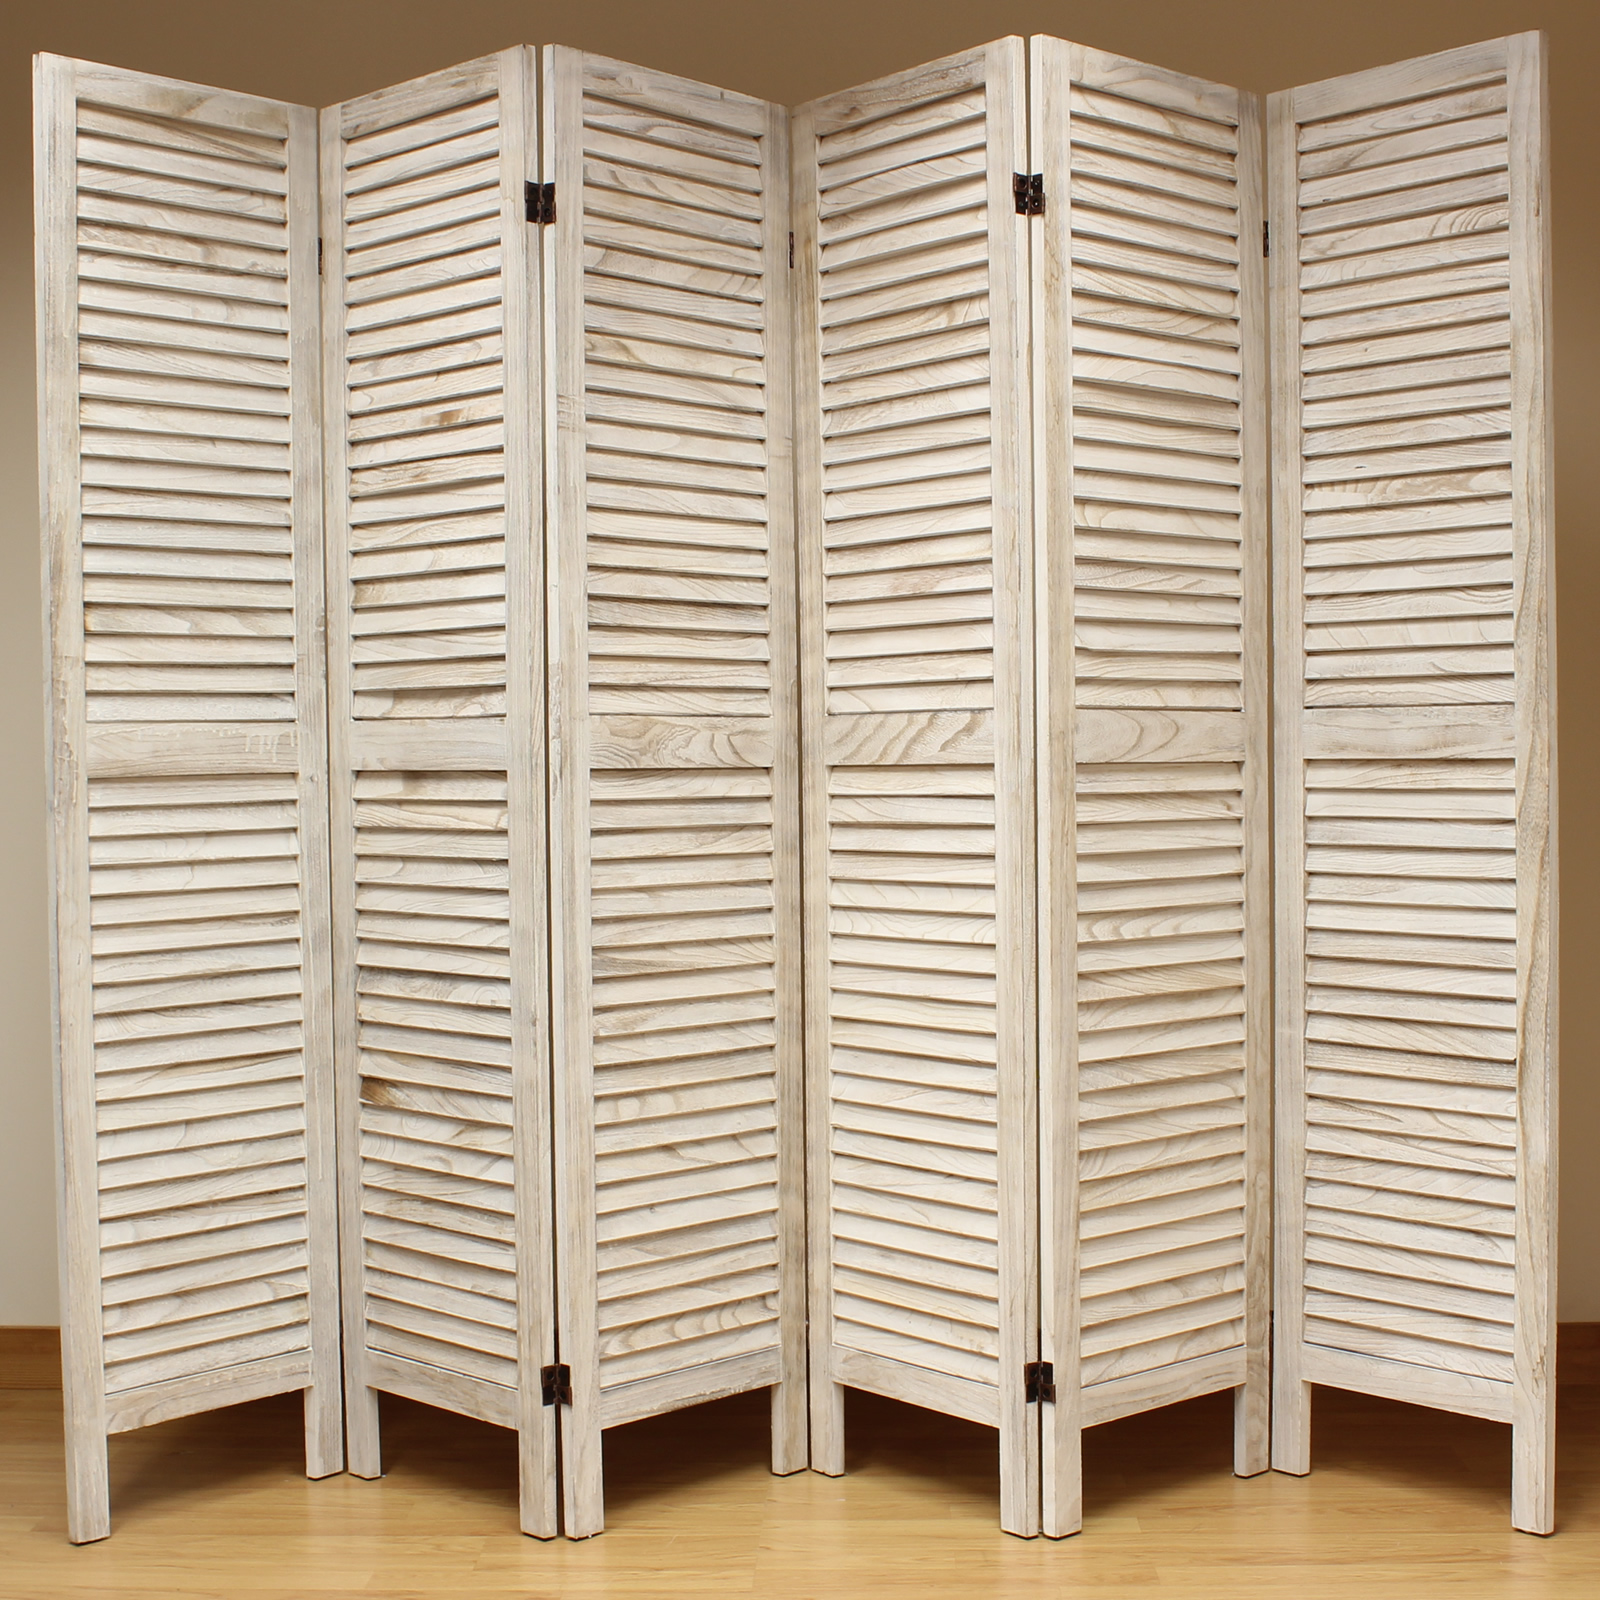 Cream 6 panel wooden slat room divider home privacy screen - Plastic room divider screen ...